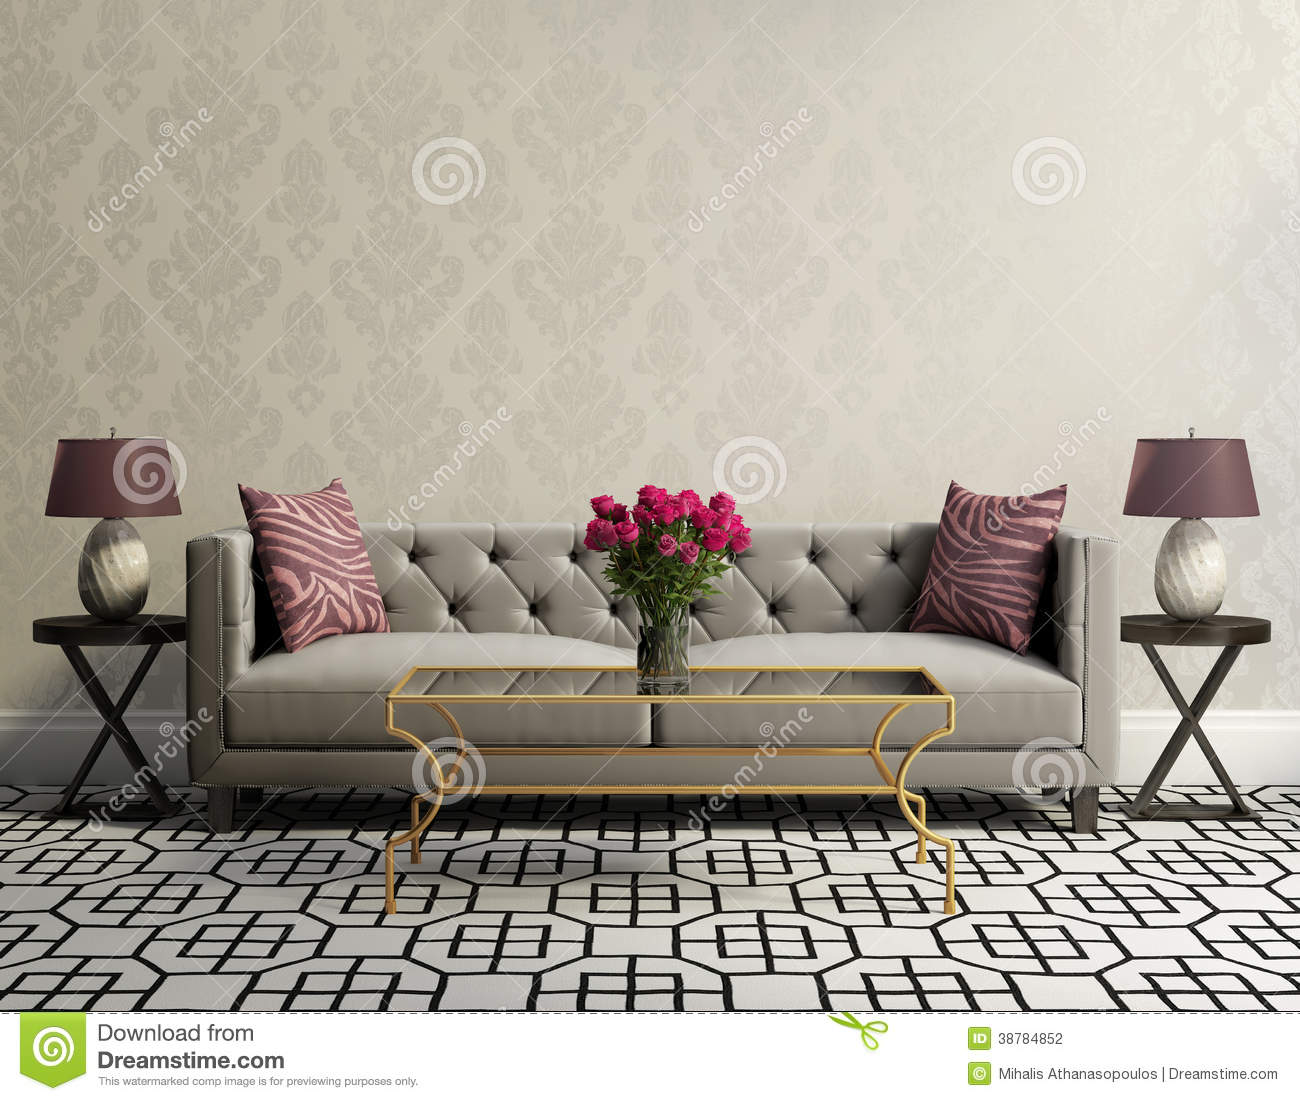 elegantes wohnzimmer der weinlese mit grauem samtsofa stockfoto bild 38784852. Black Bedroom Furniture Sets. Home Design Ideas